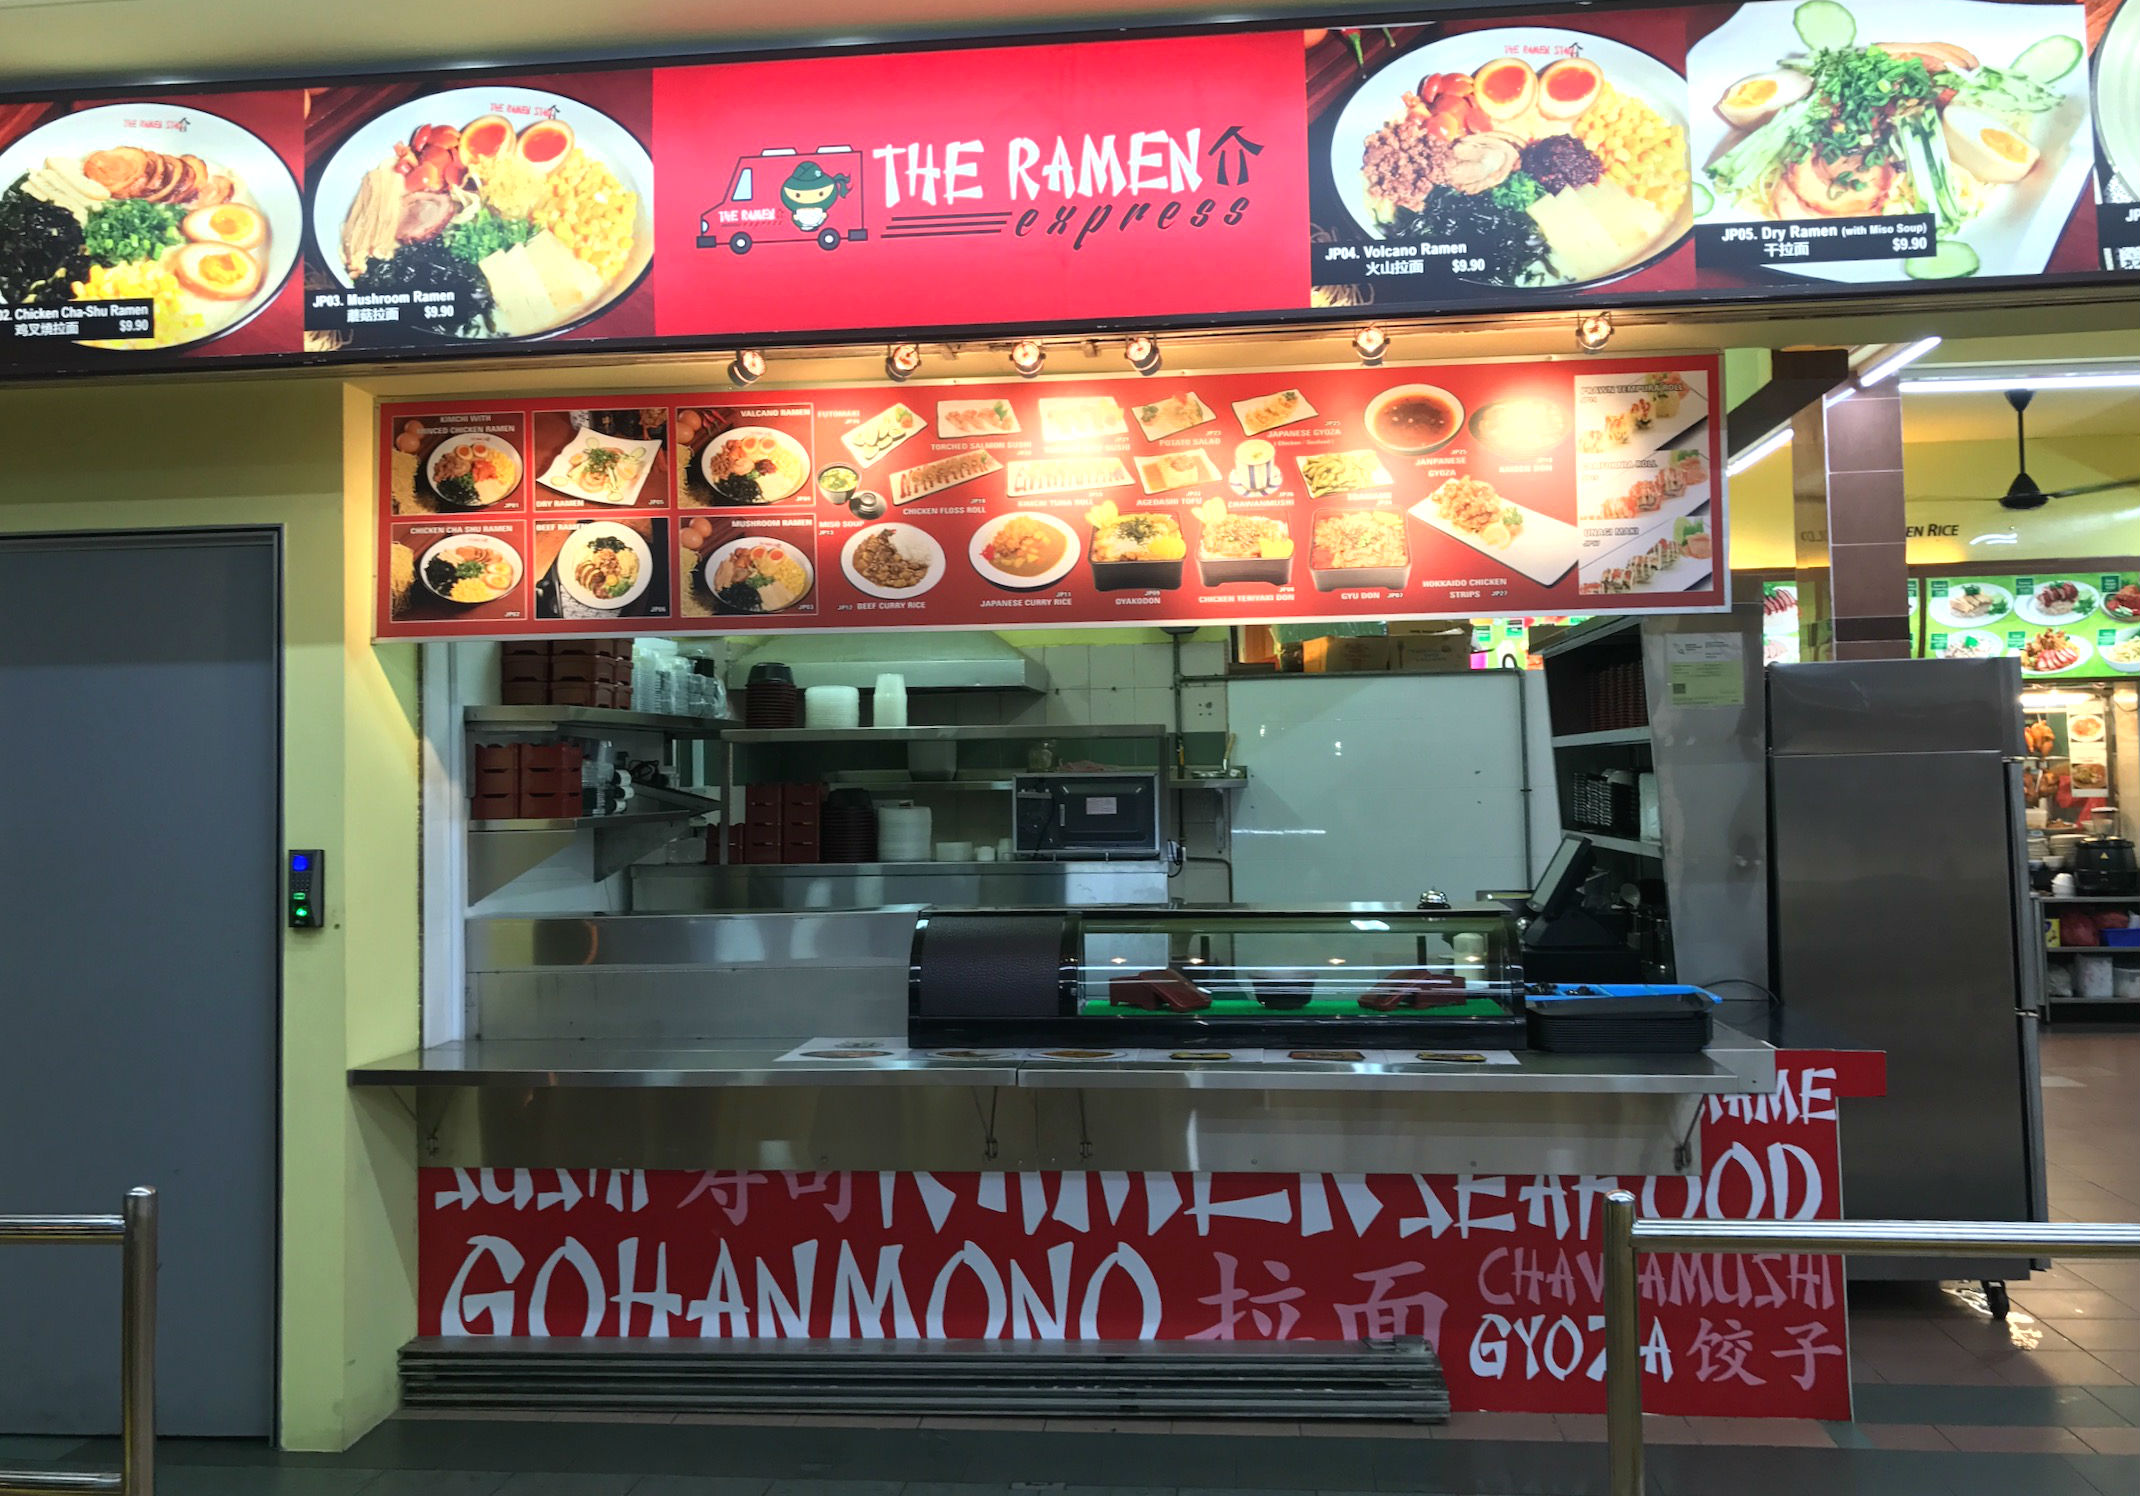 The Ramen Express at Rasa Rasa Kampong Changi